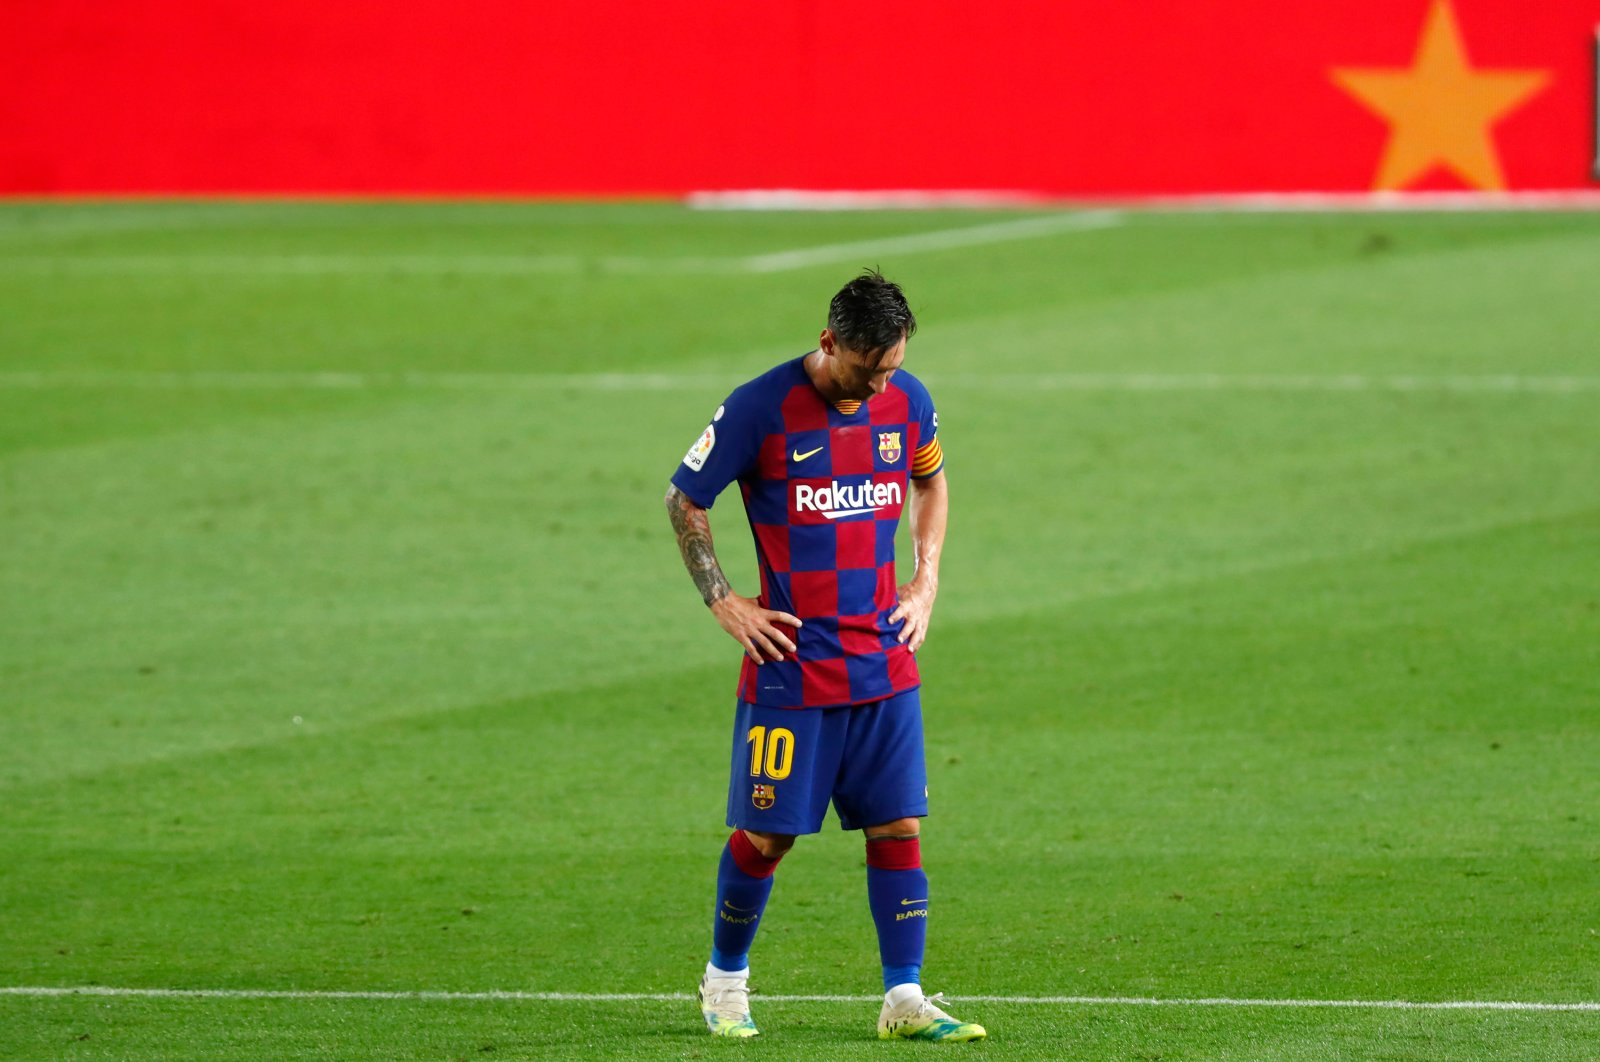 Barcelona's Lionel Messi looks down dejected as he walks after the end of the match against Osasuna, Barcelona, Spain, July 16, 2020. (AP Photo)